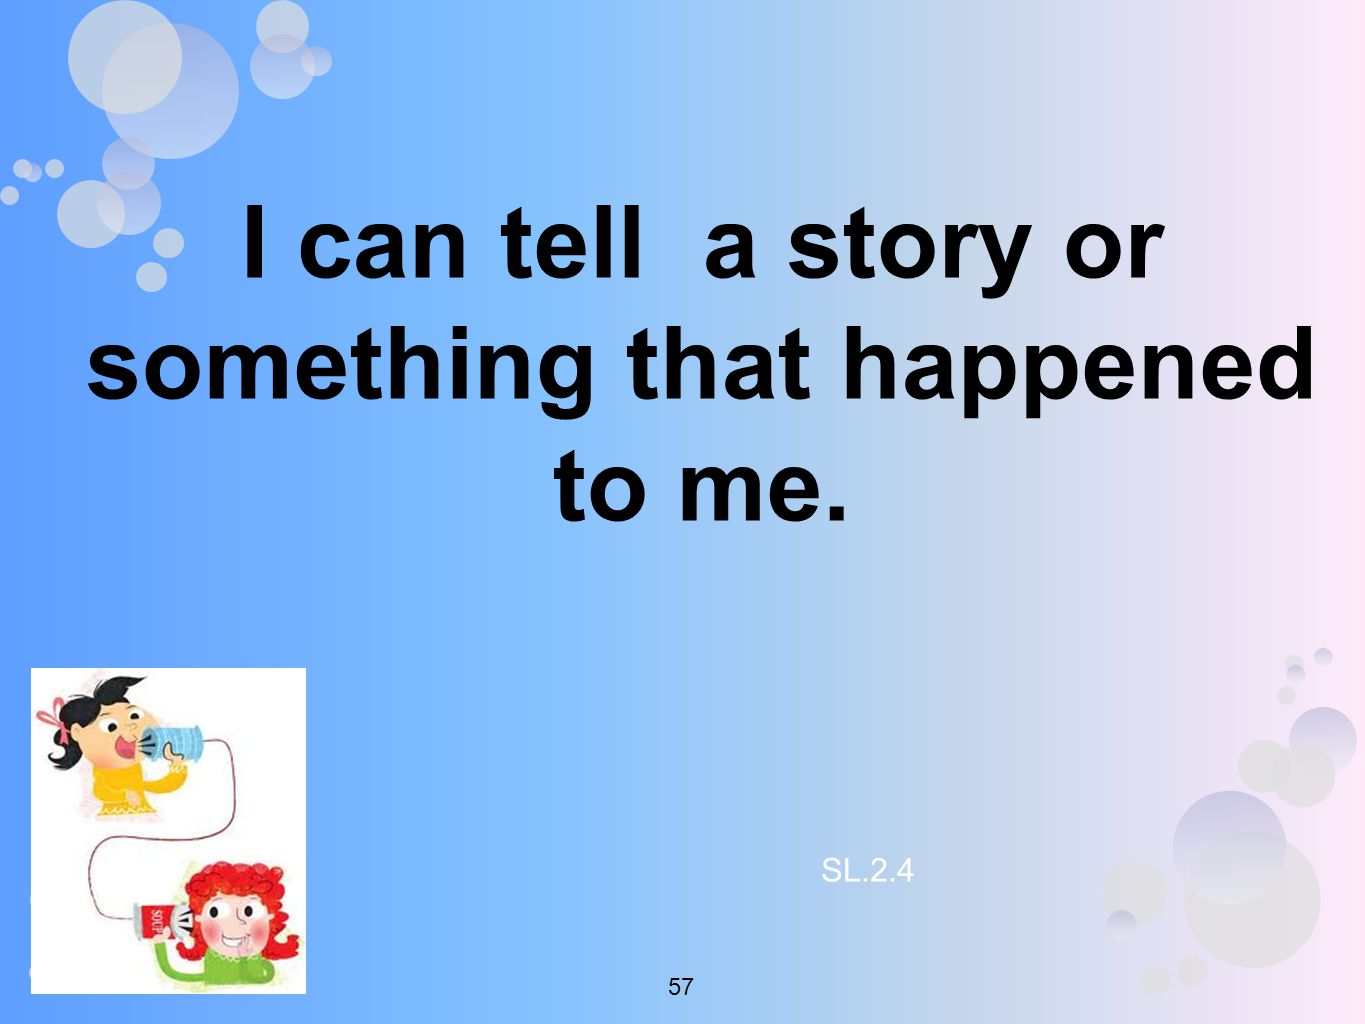 I can tell a story or something that happened to me. SL